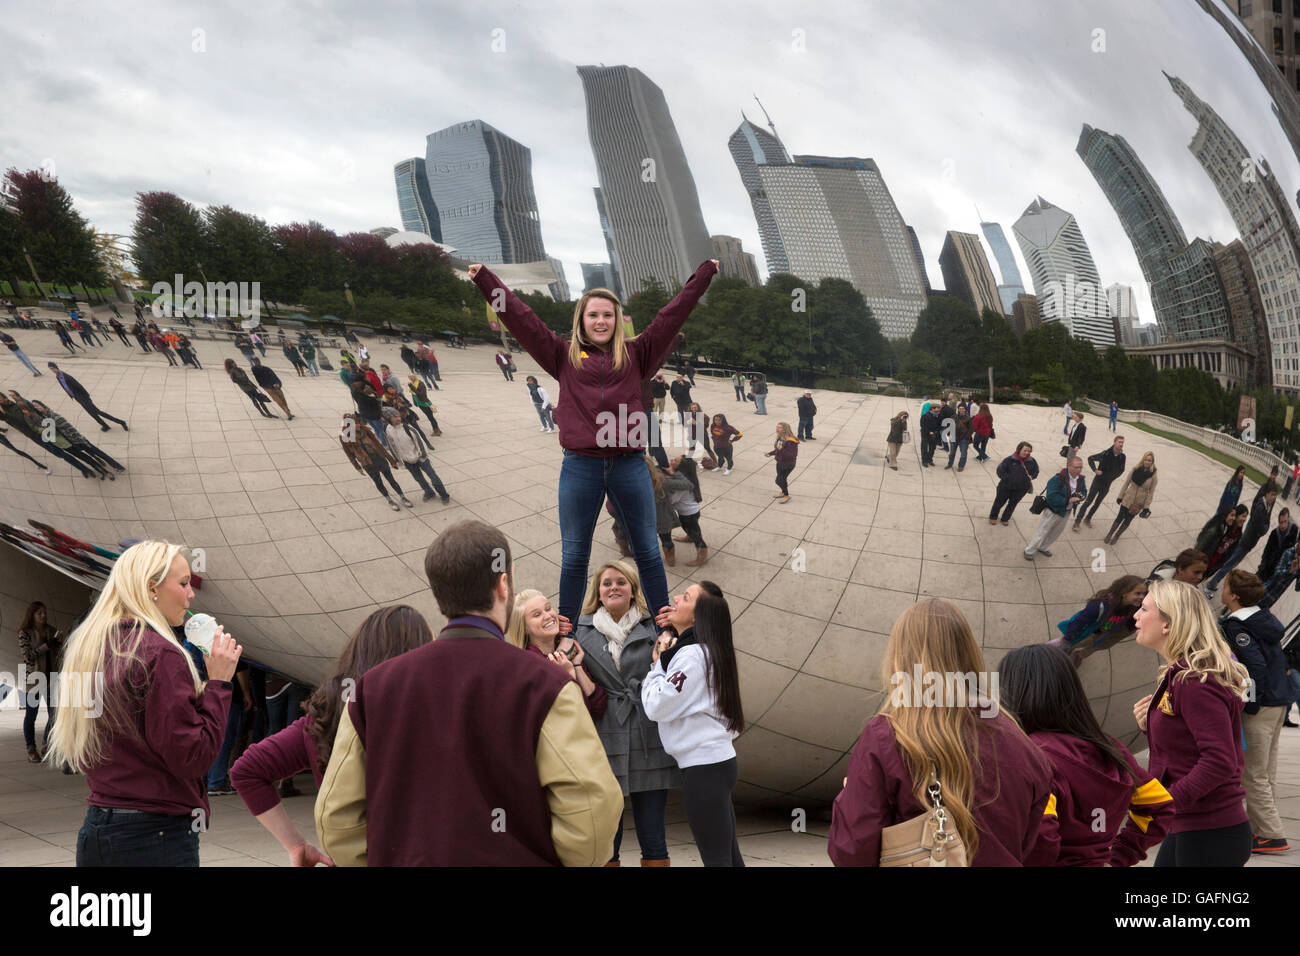 University of Minnesota cheerleaders in the front the Cloud Gate sculpture in Chicago, Illinois. - Stock Image